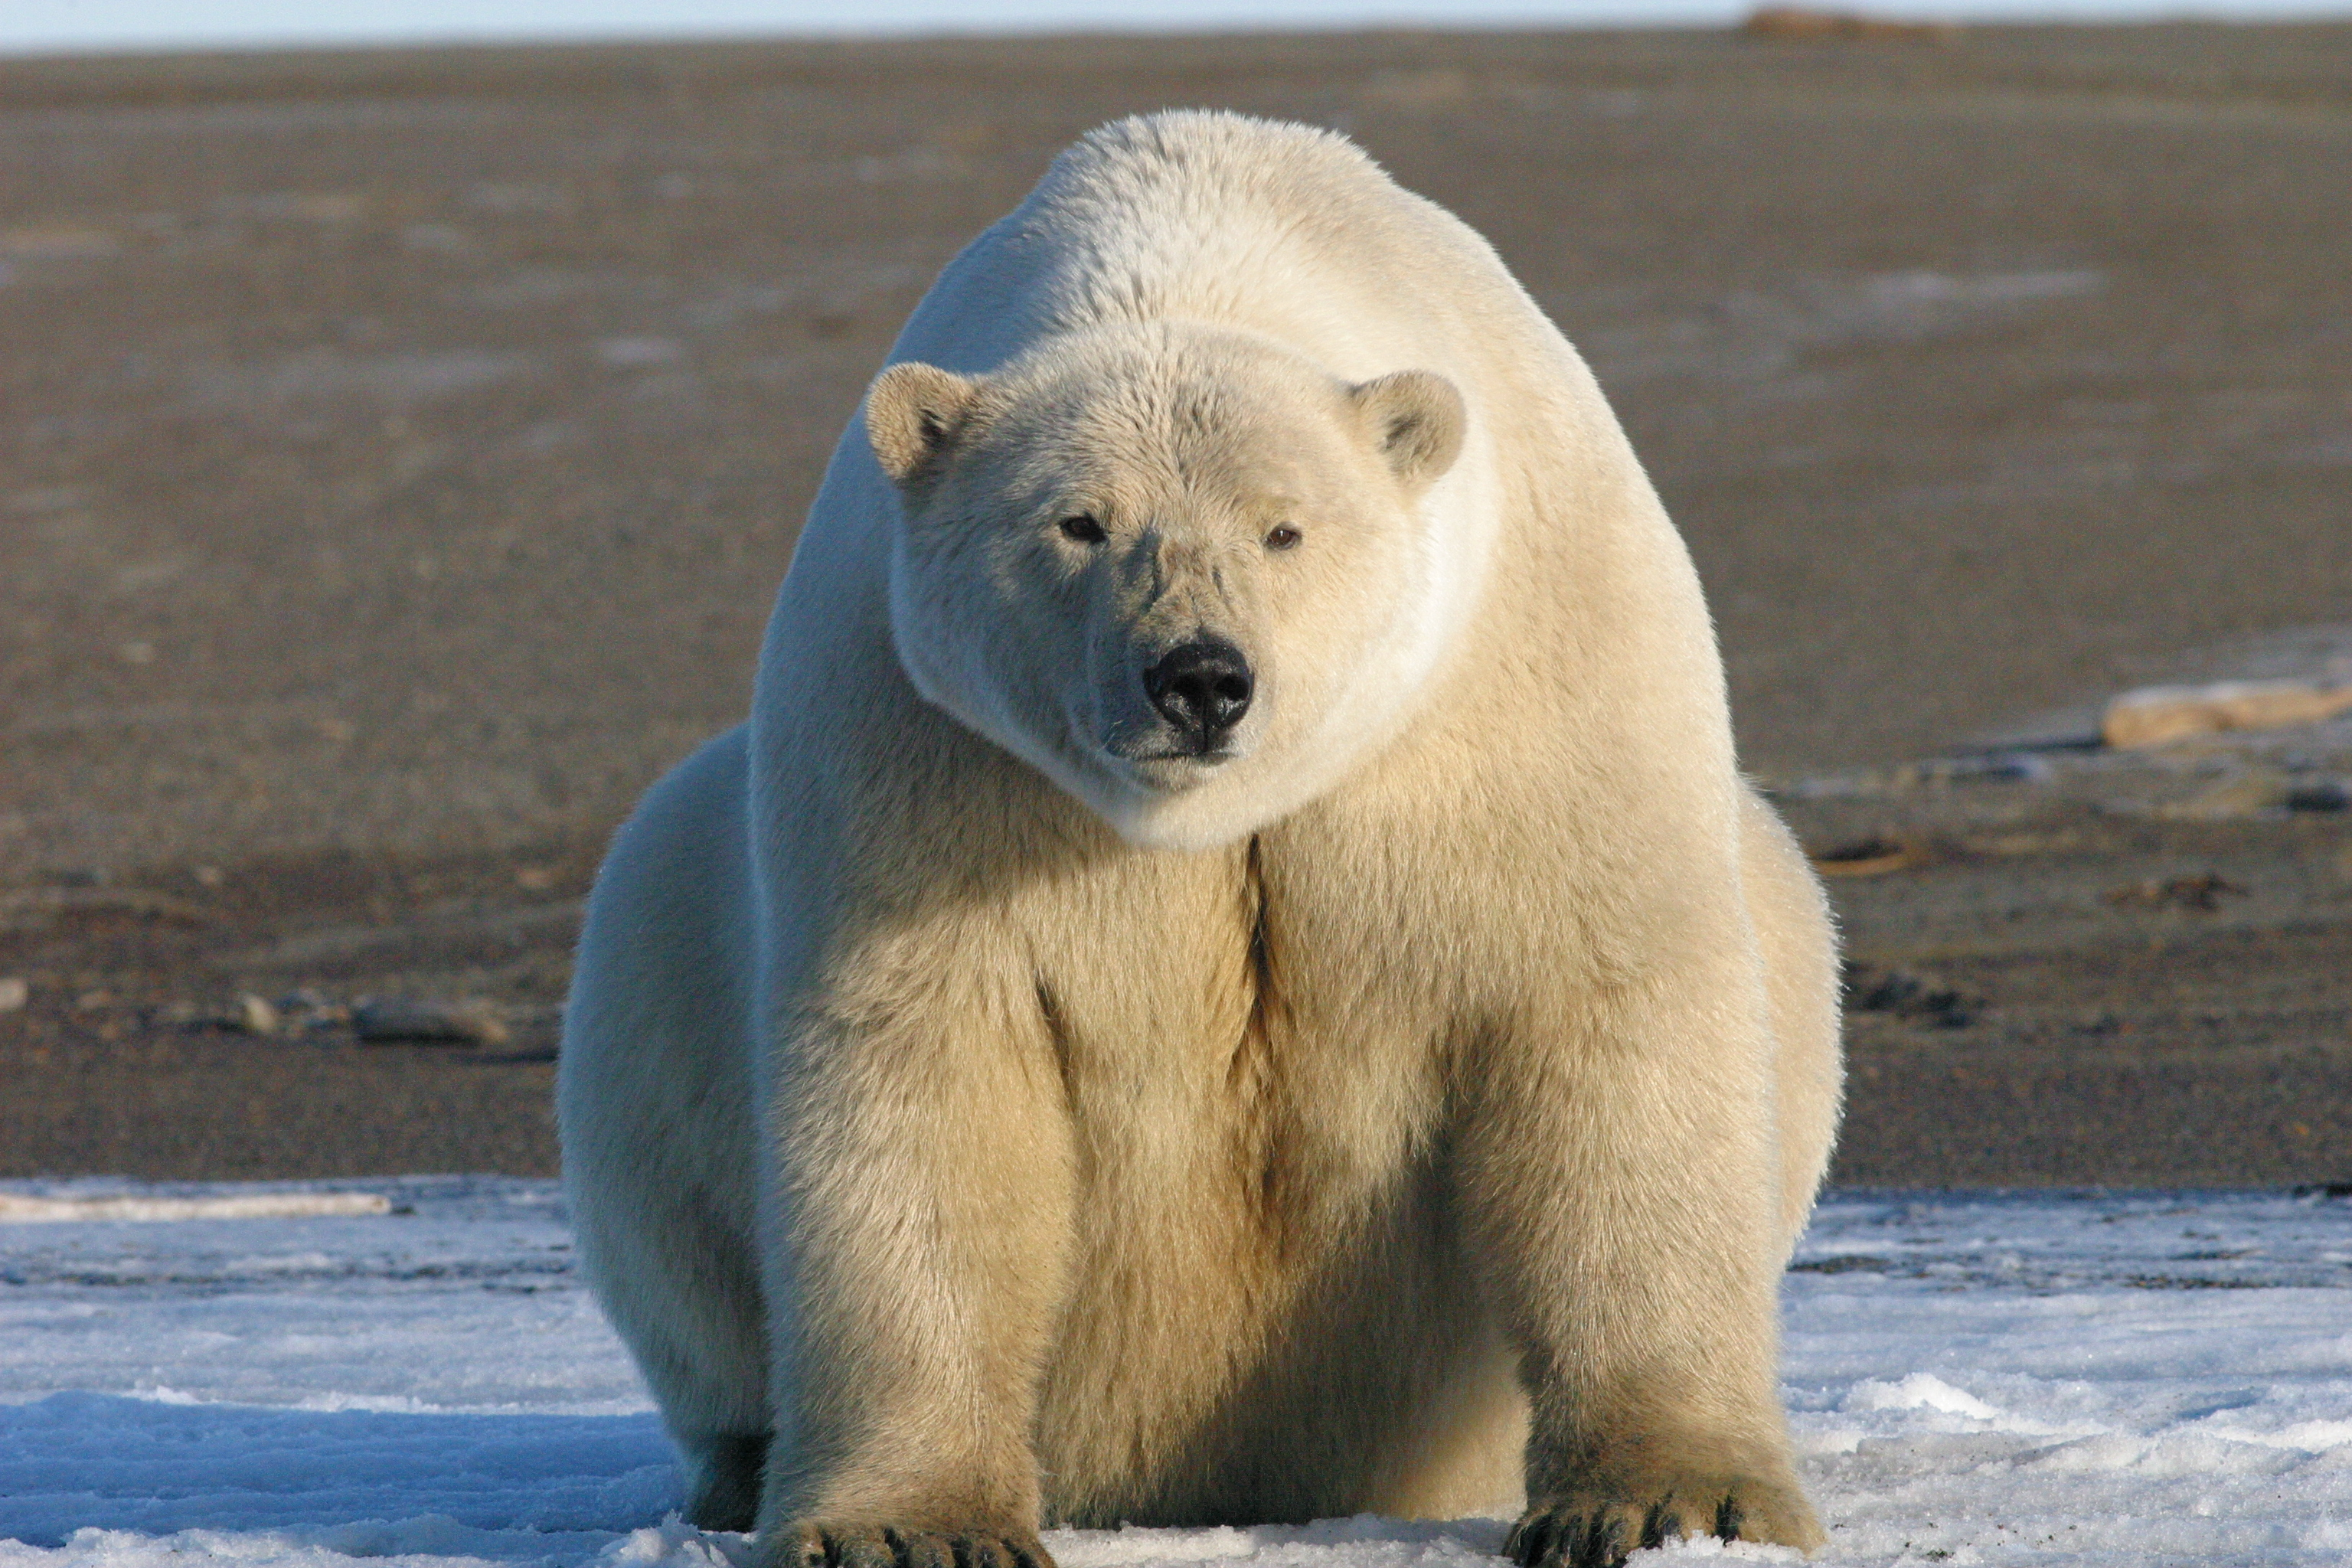 Animals of North Pole, Polar Bear 71.47 Kb